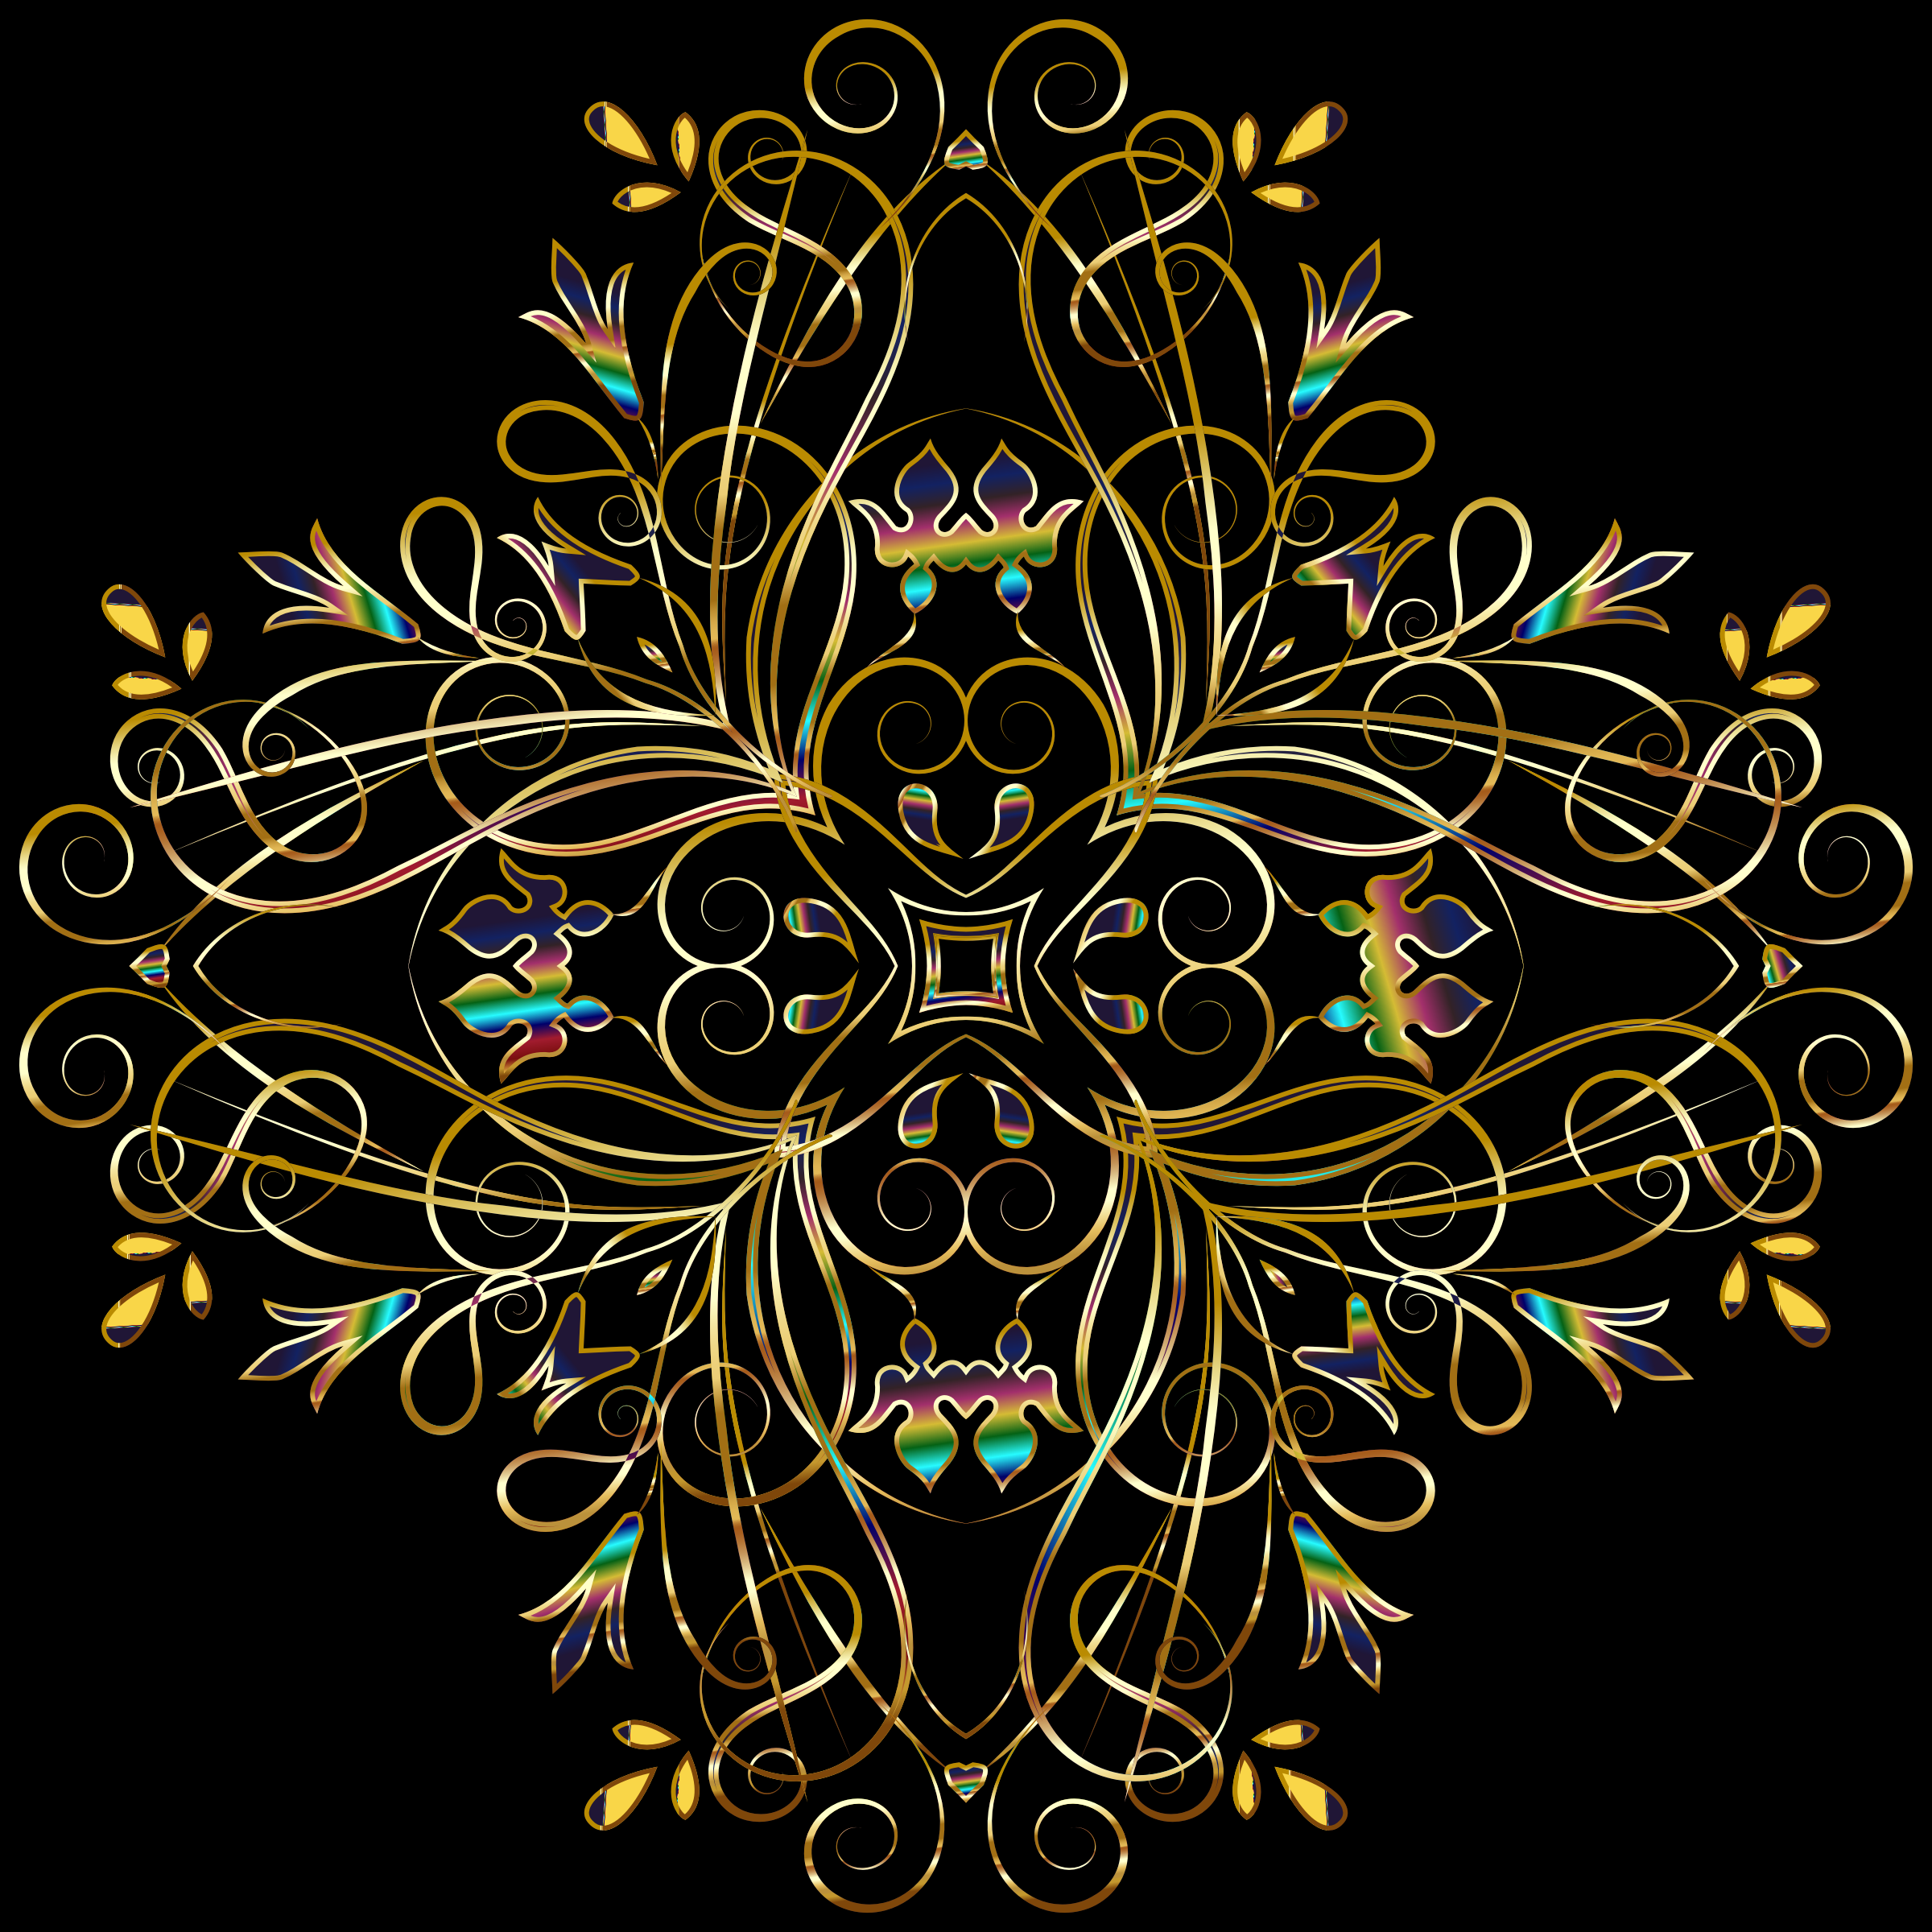 Flourishy Floral Design 11 Variation 1 by GDJ